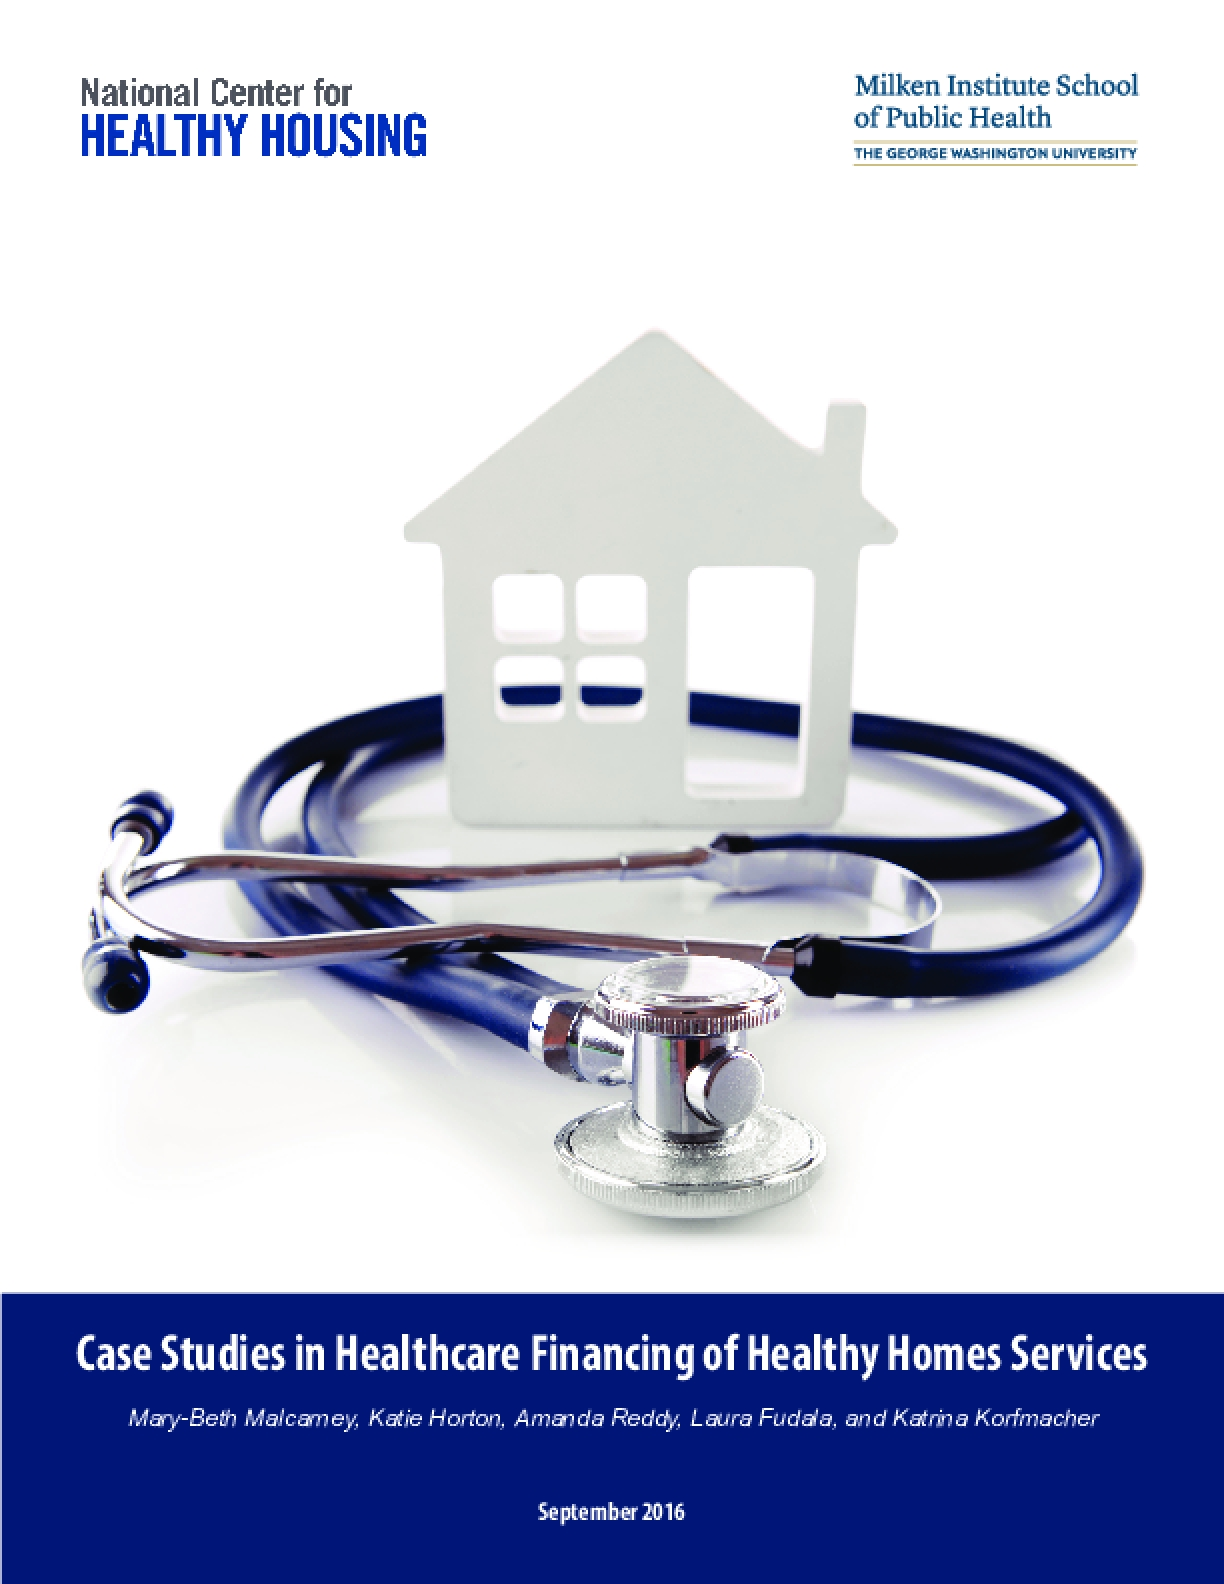 Case Studies in Healthcare Financing of Healthy Homes Services